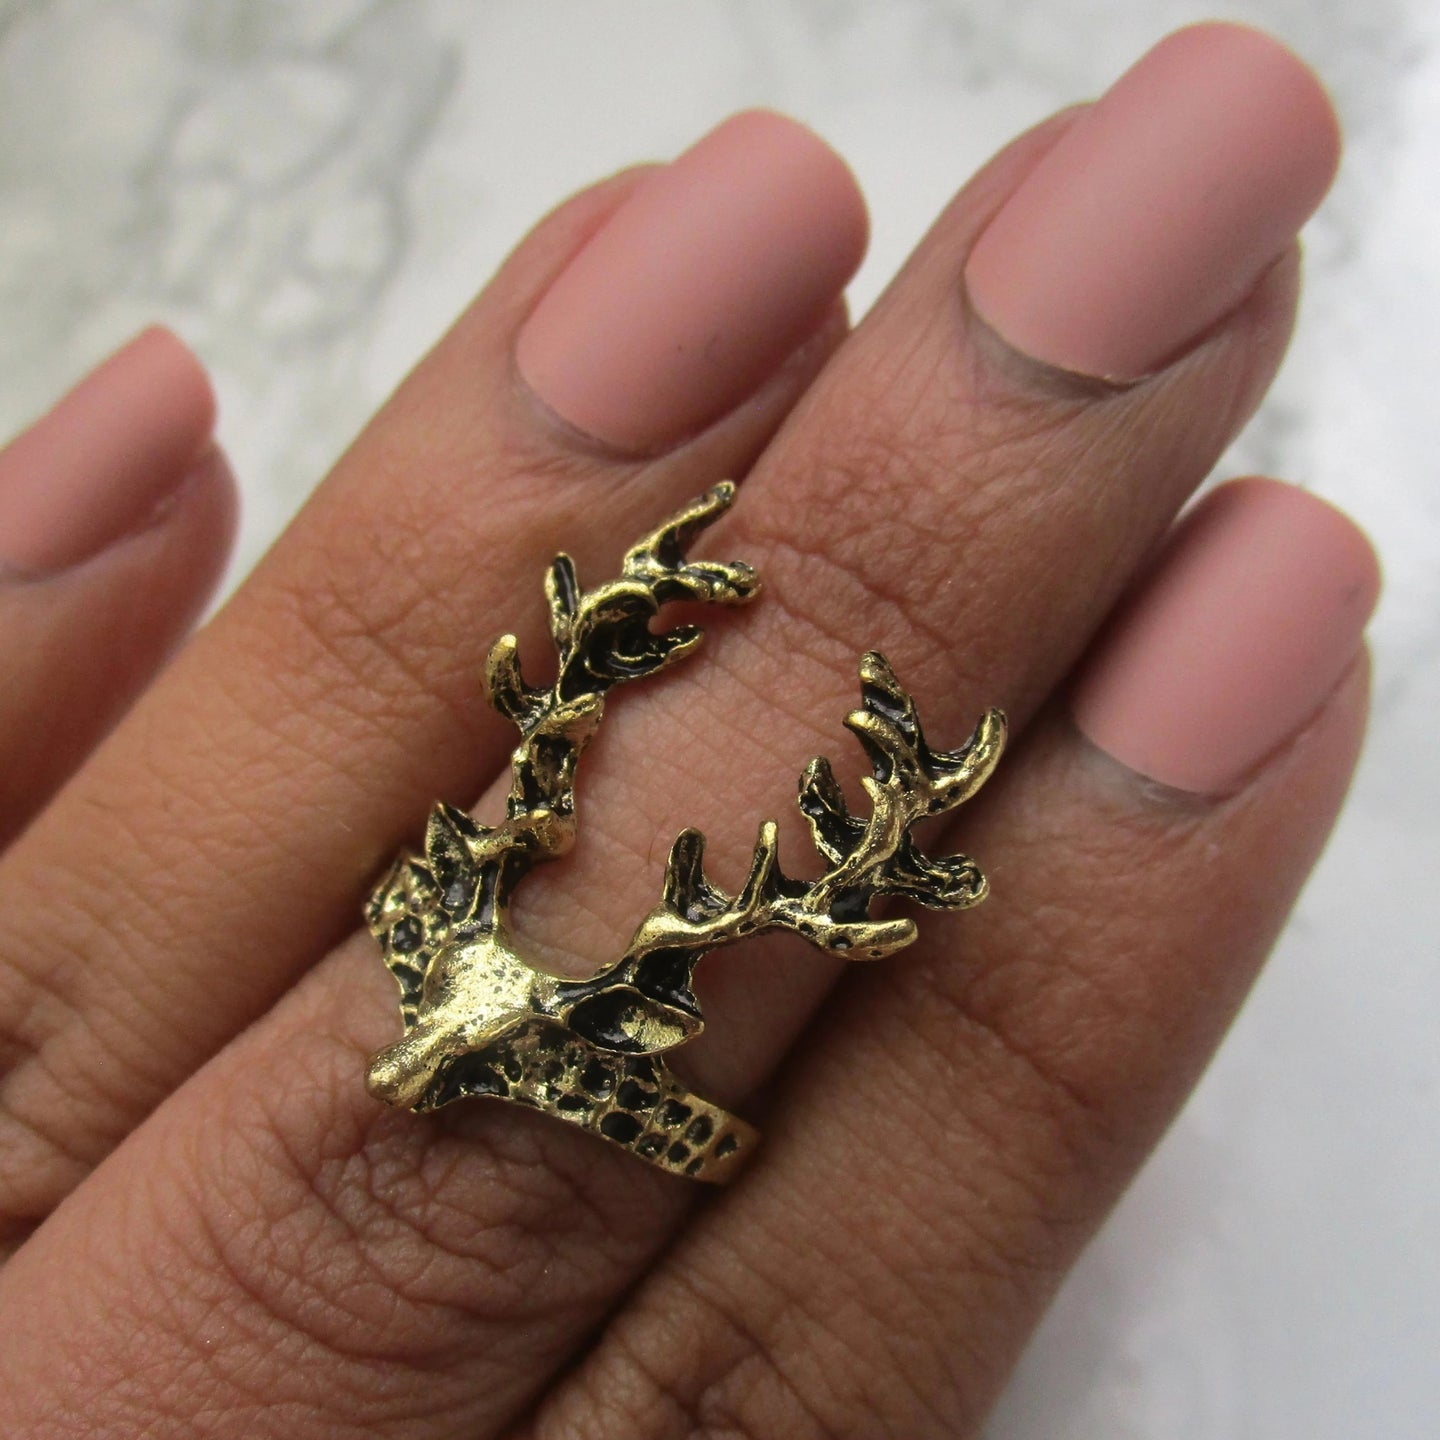 One Size Gold Stag Midi Ring, suitable for all occasions.